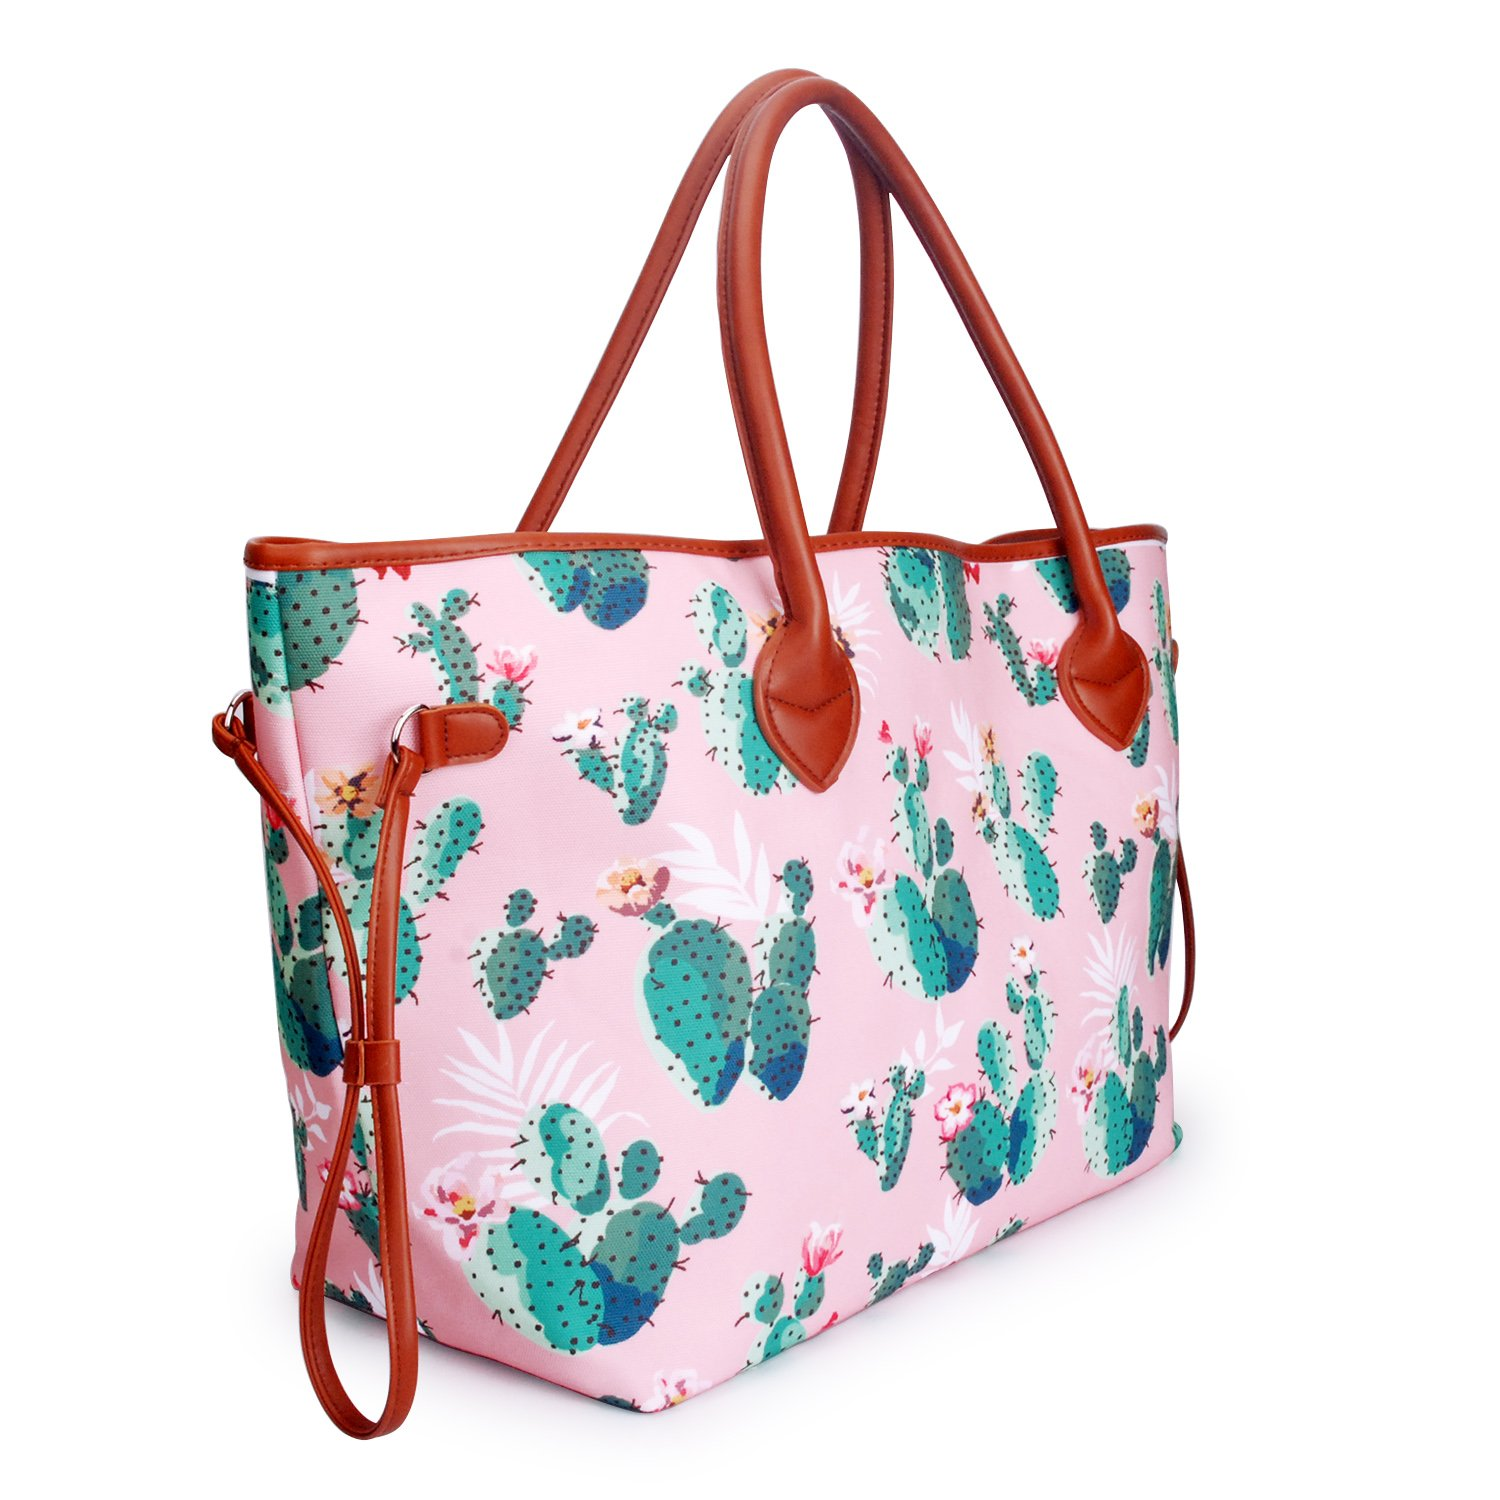 c50859cff9 Amazon.com  Canvas beach bag Casual Tote Bag with PU piping and handles  (cactus)  Shoes